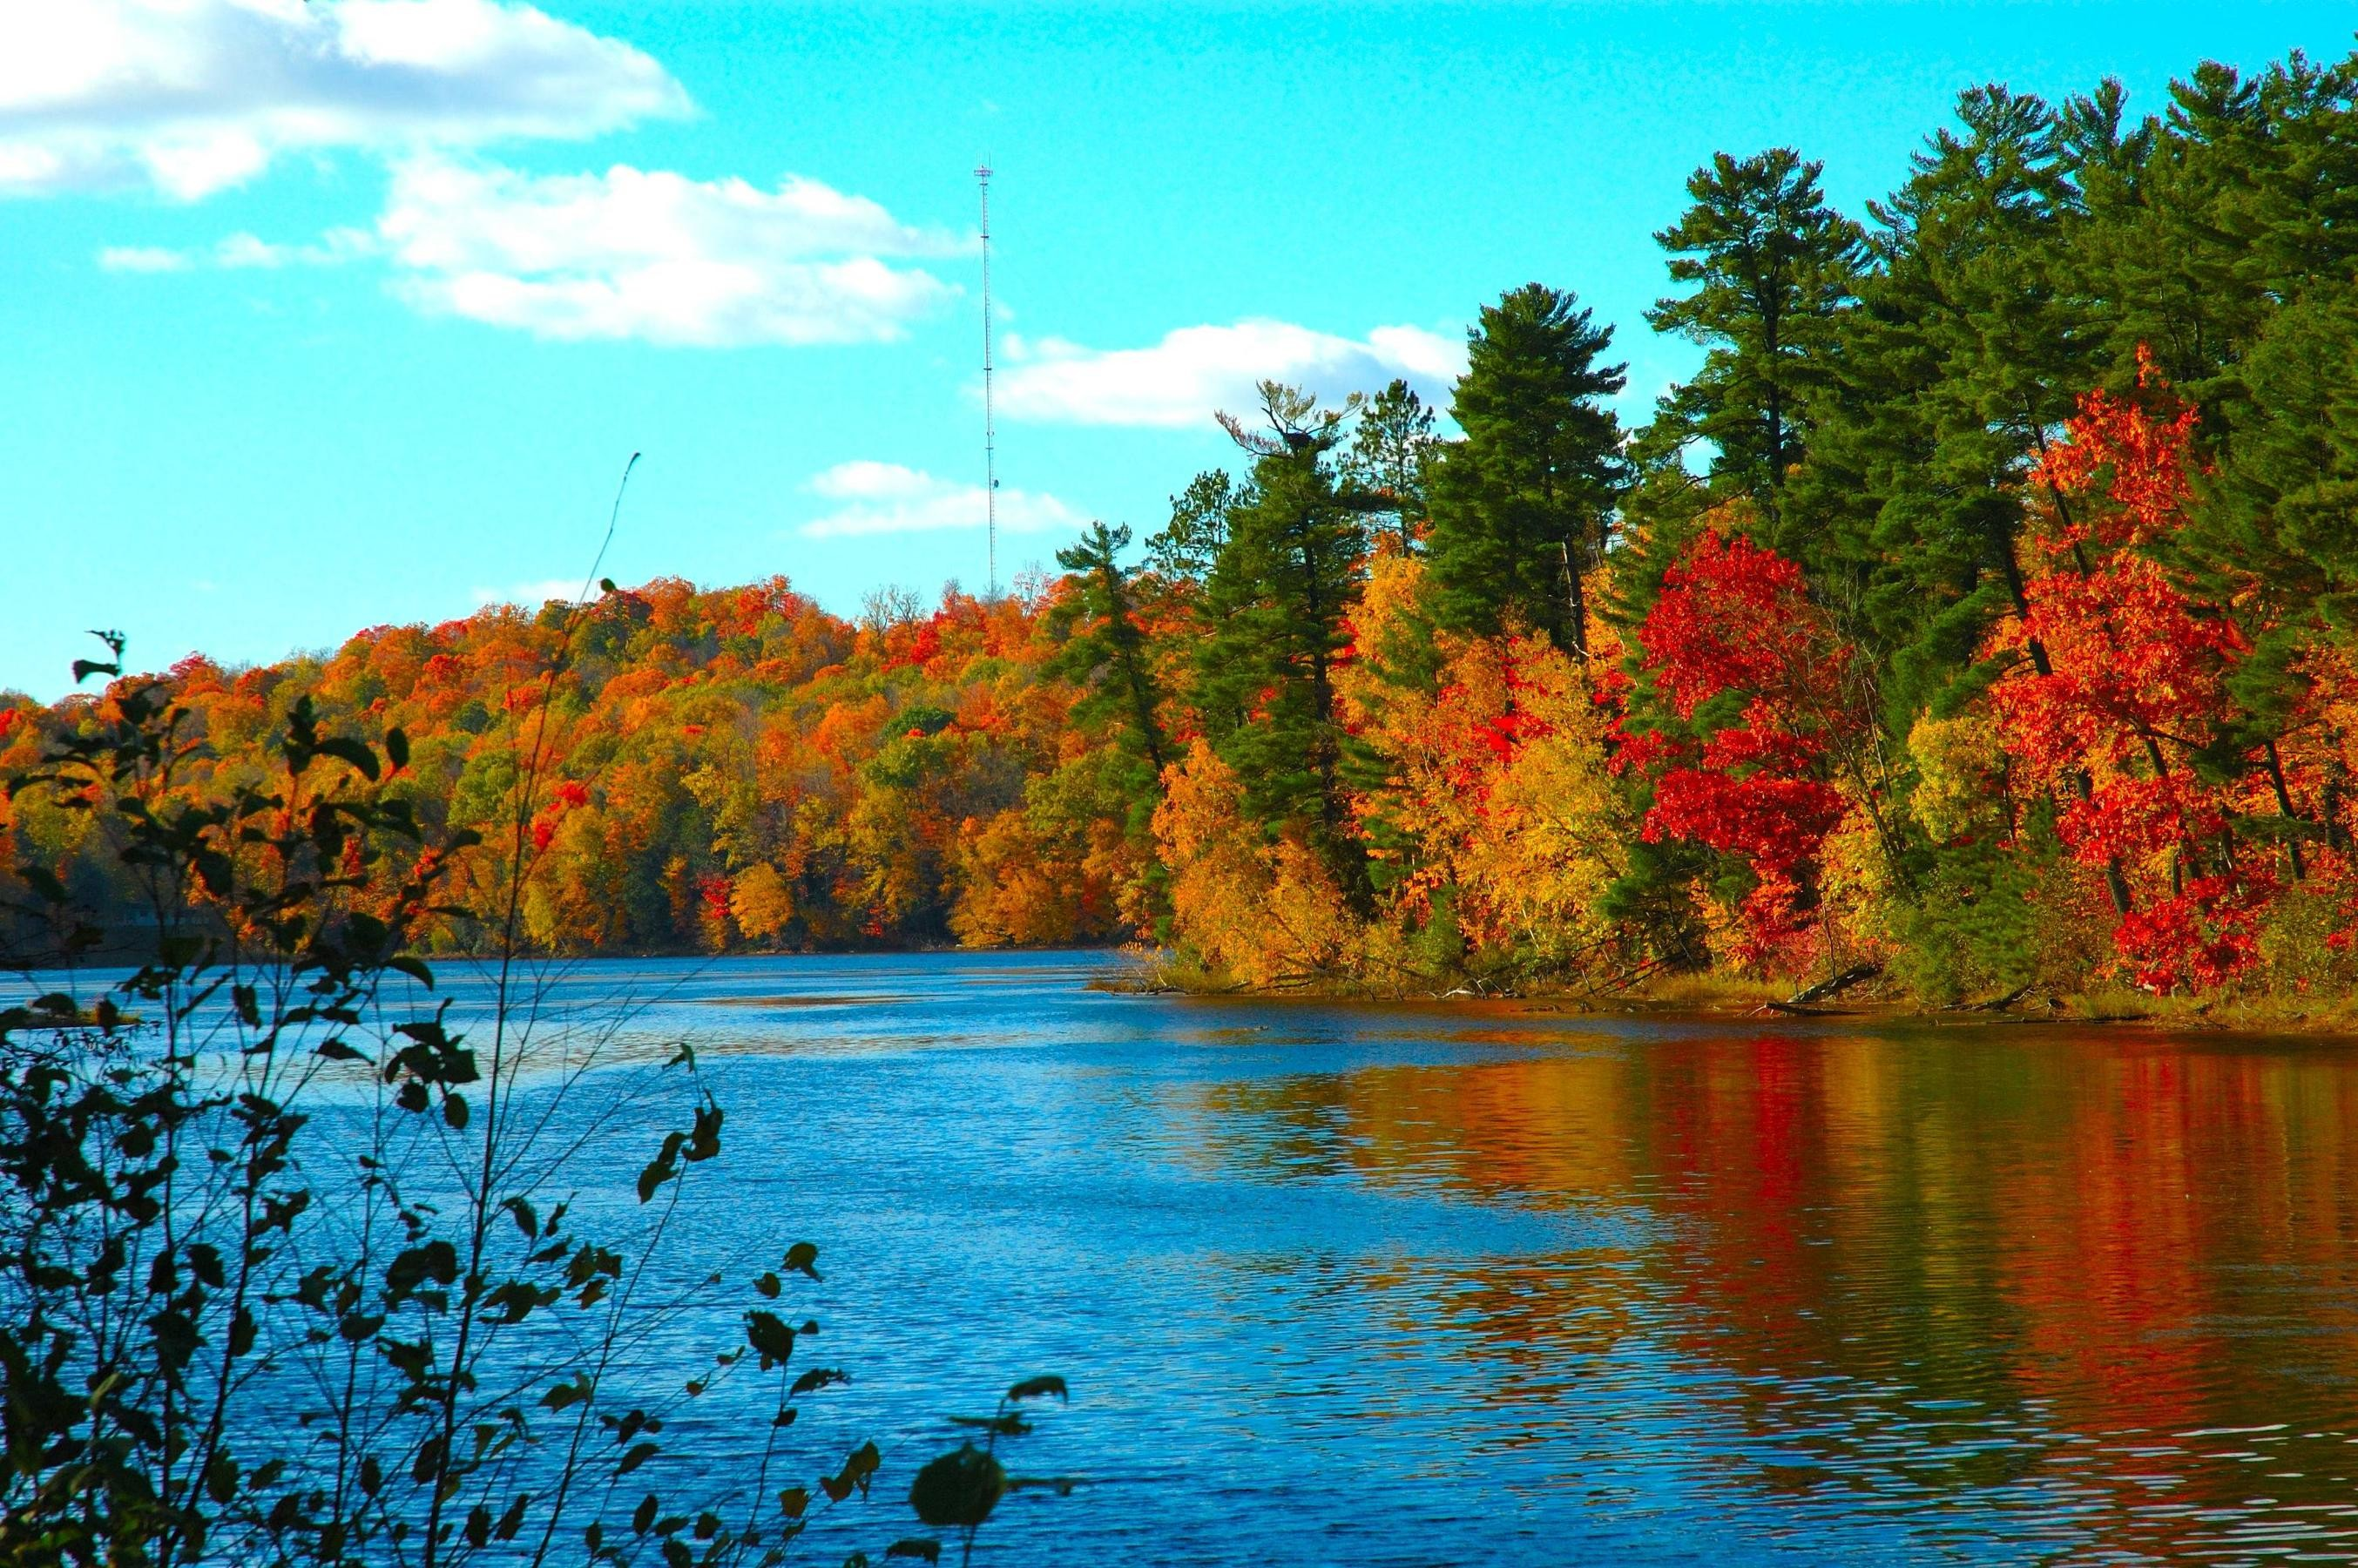 Autumn Landscapes ☆ Wallpapers: colorful fall landscapes computer desktop wallpaper  backgrounds: wallpapers of landscapes from across American countryside …